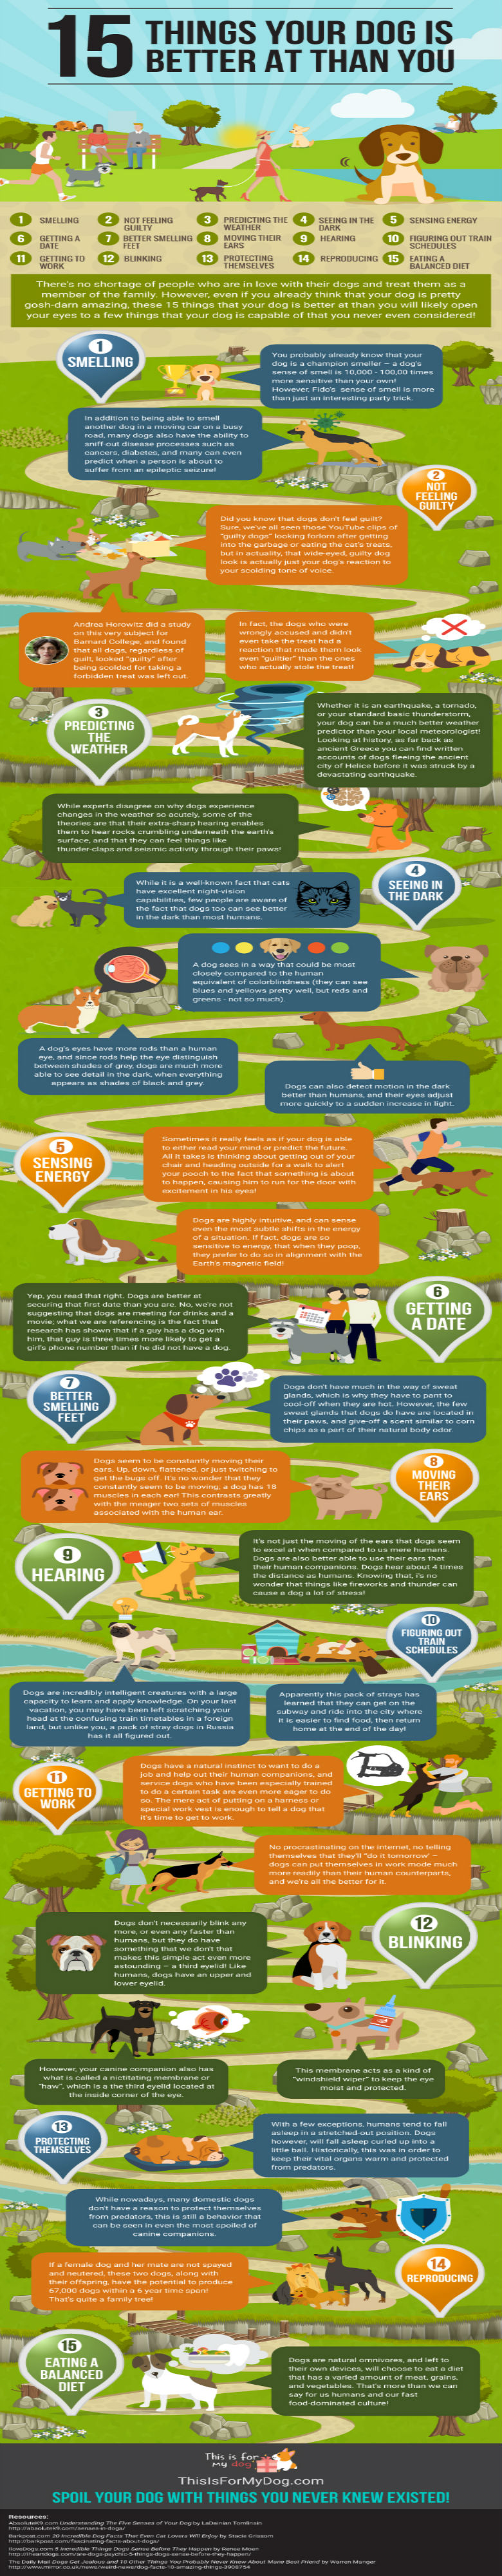 15 things your dog is better at than you